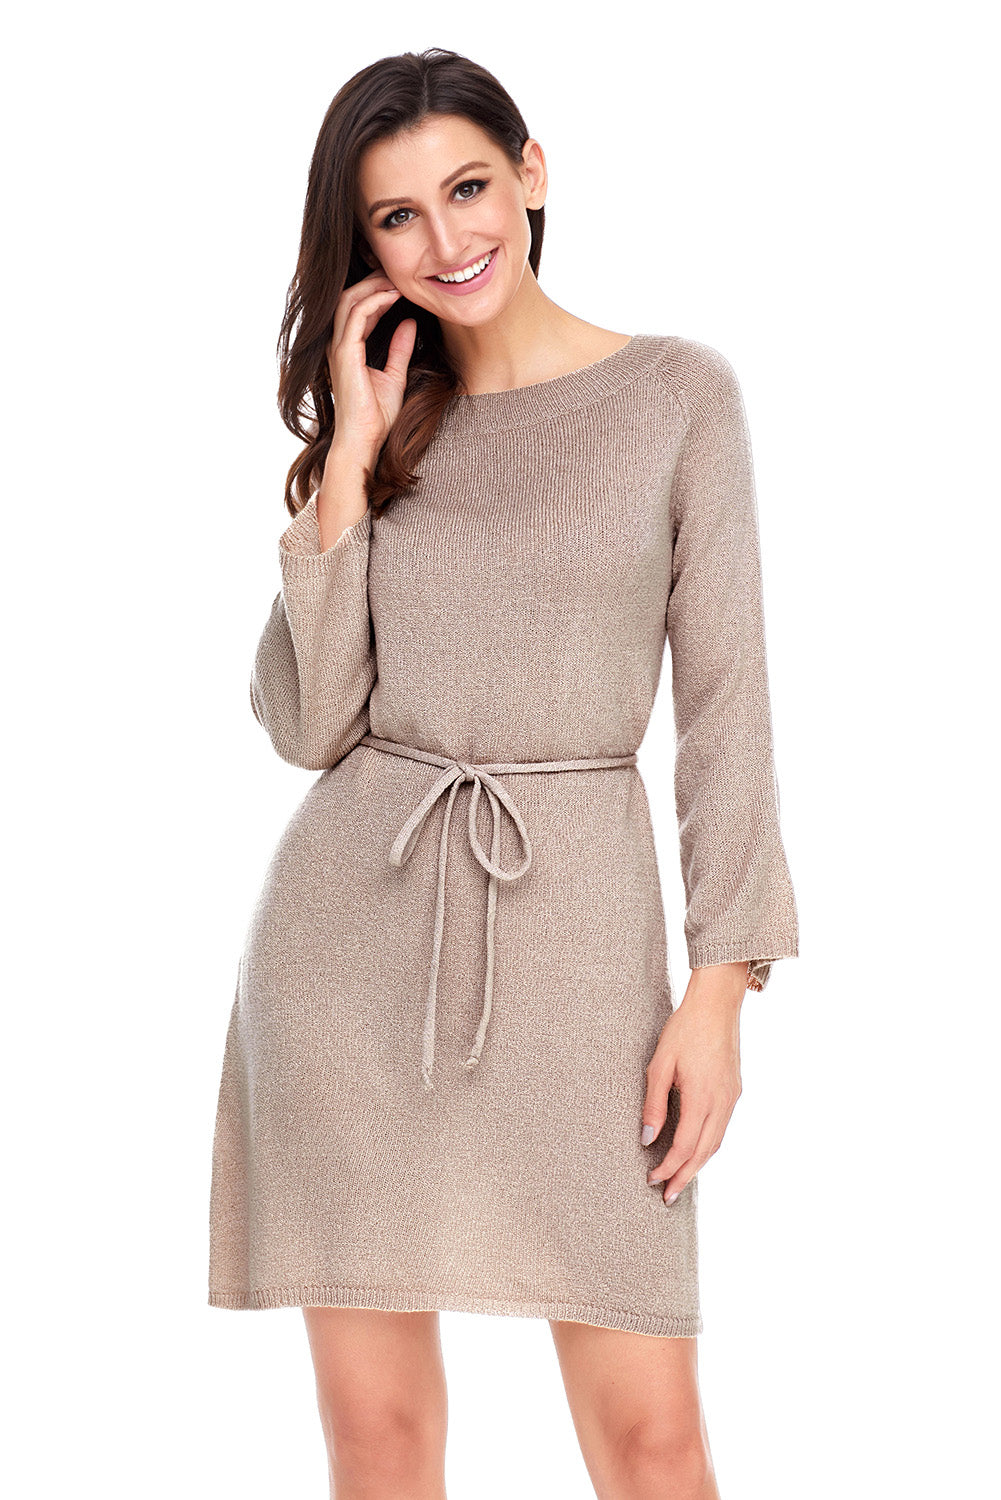 Khaki Off The Shoulder Knit Sweater Dress